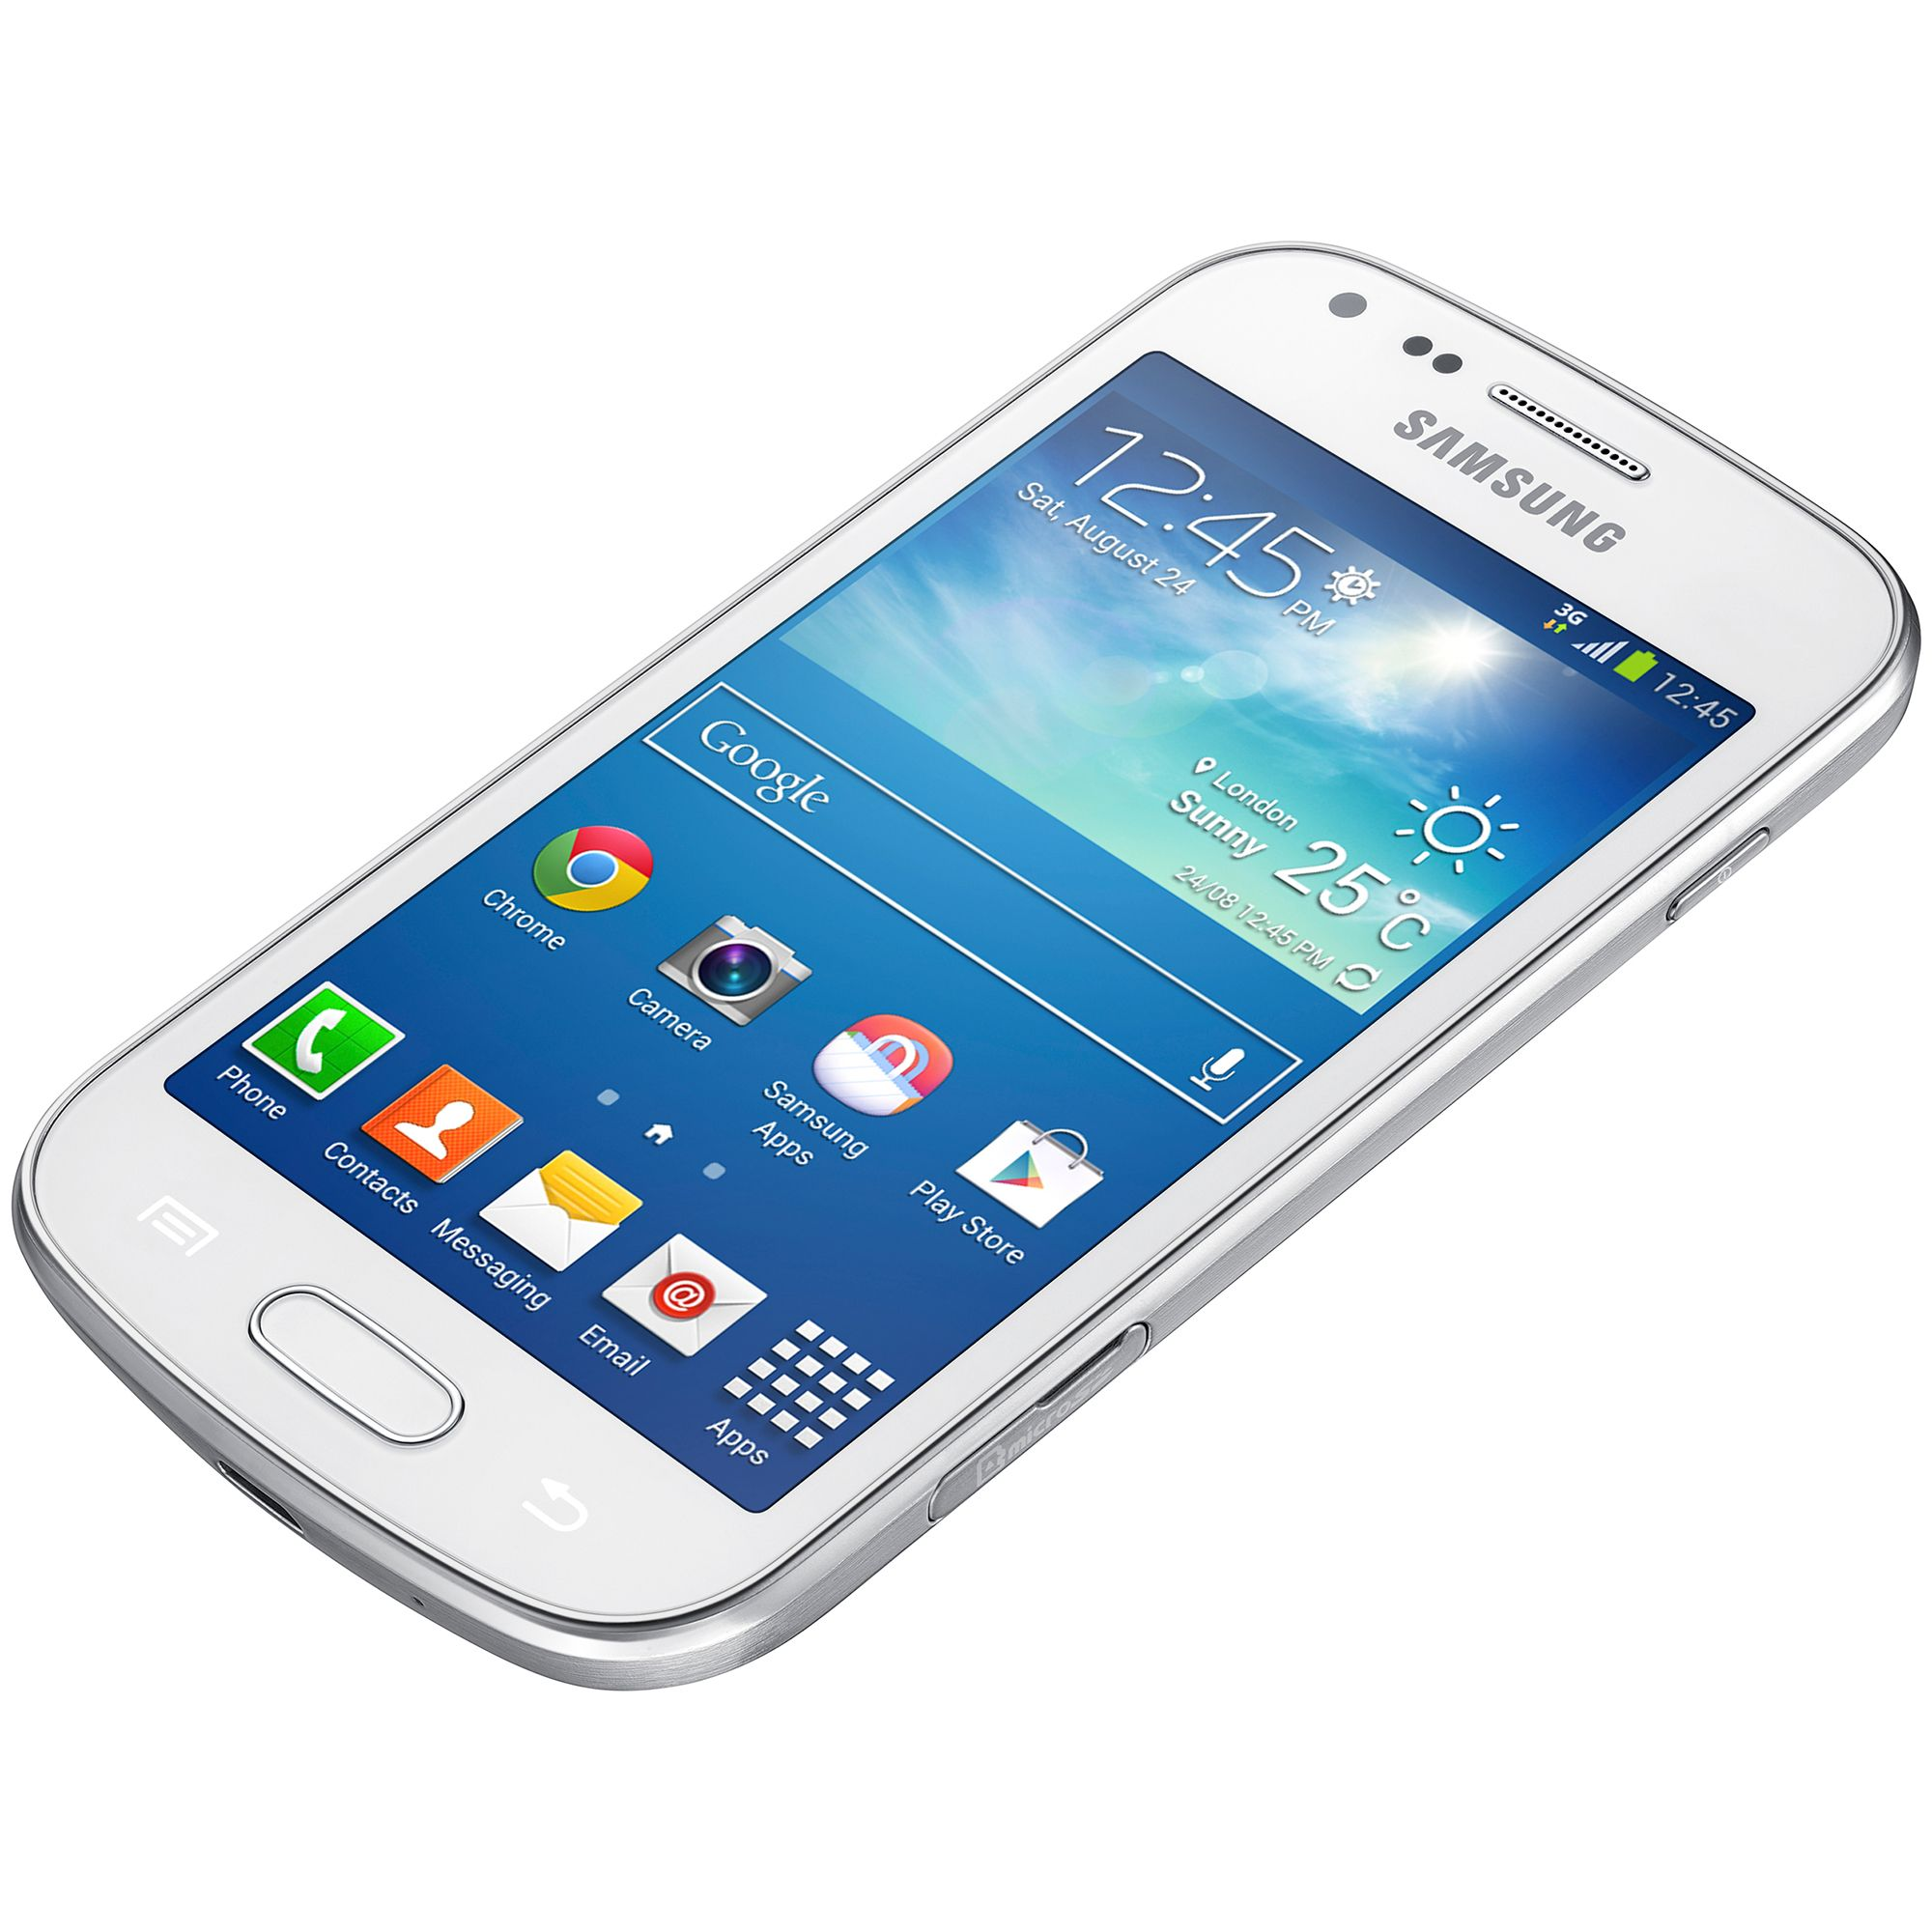 Samsung S7580 Trend Plus (With images) Samsung galaxy